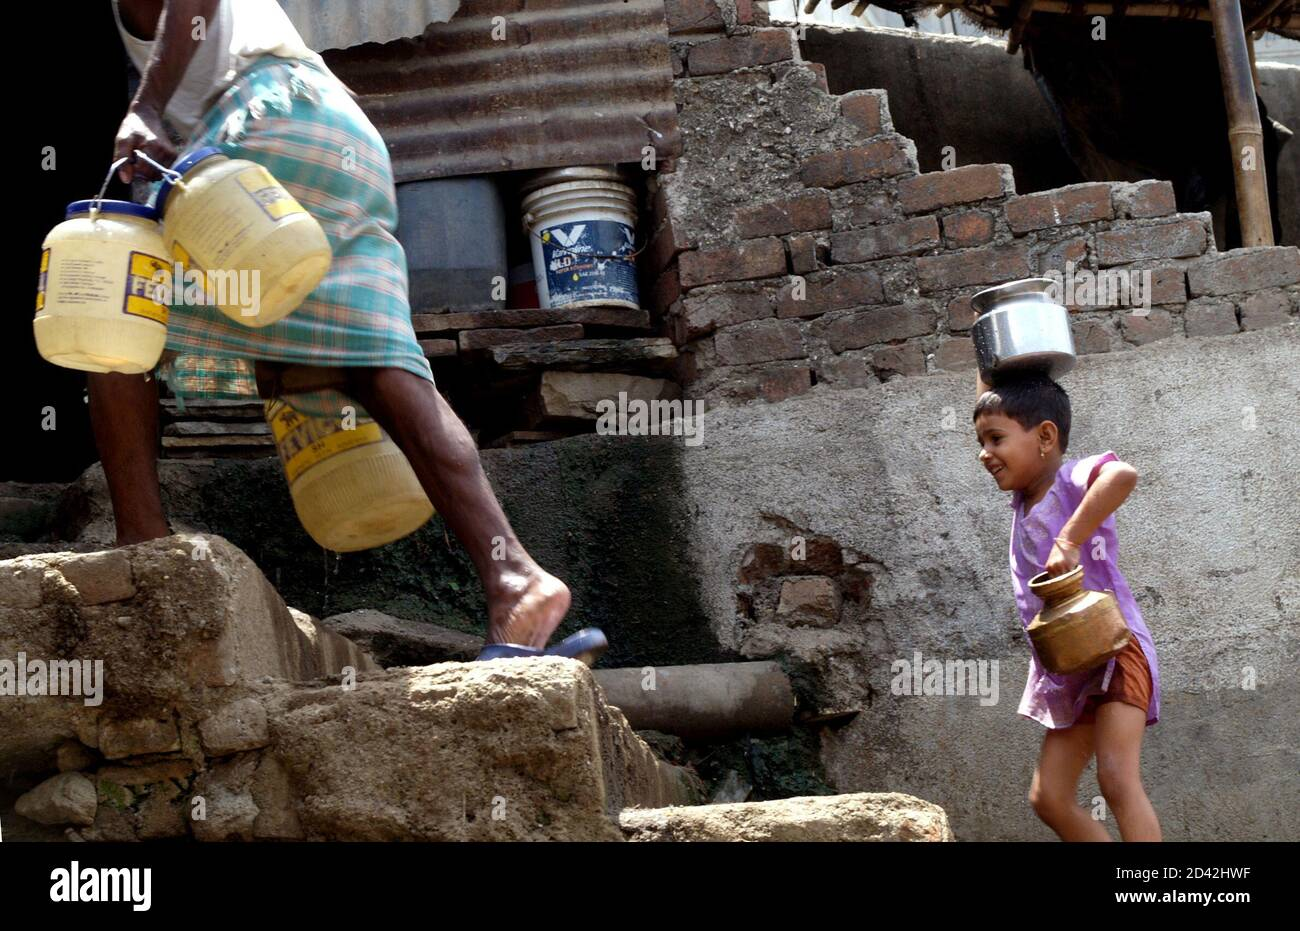 Kanika, a girl living in a slum, carries water pots home at a suburb in Bombay May 24, 2005. At present nearly 30 percent of Bombay's 18 million people live in slums without adequate supply of piped water. As more of them move into multi-storeyed buildings with piped water in every house, the demand for water is expected to skyrocket, according to the Indo-Asian News Service. REUTERS/Adeel Halim   AD/LA Stock Photo